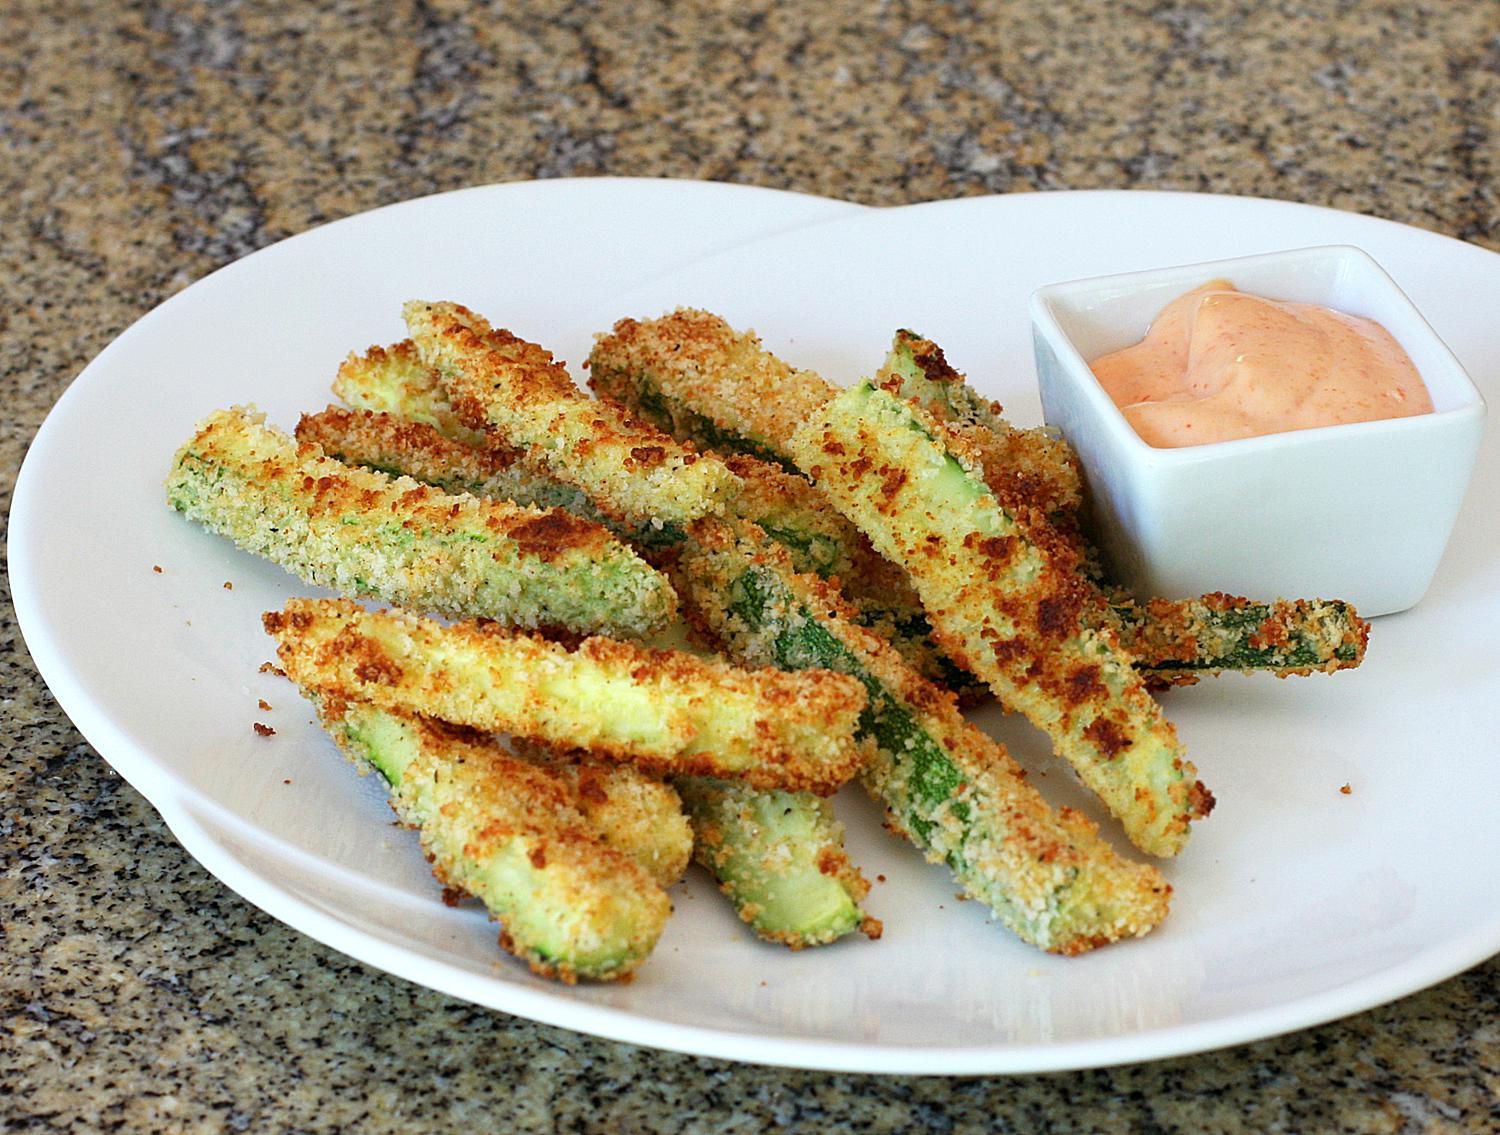 Baked Panko and Parmesan Zucchini Fries